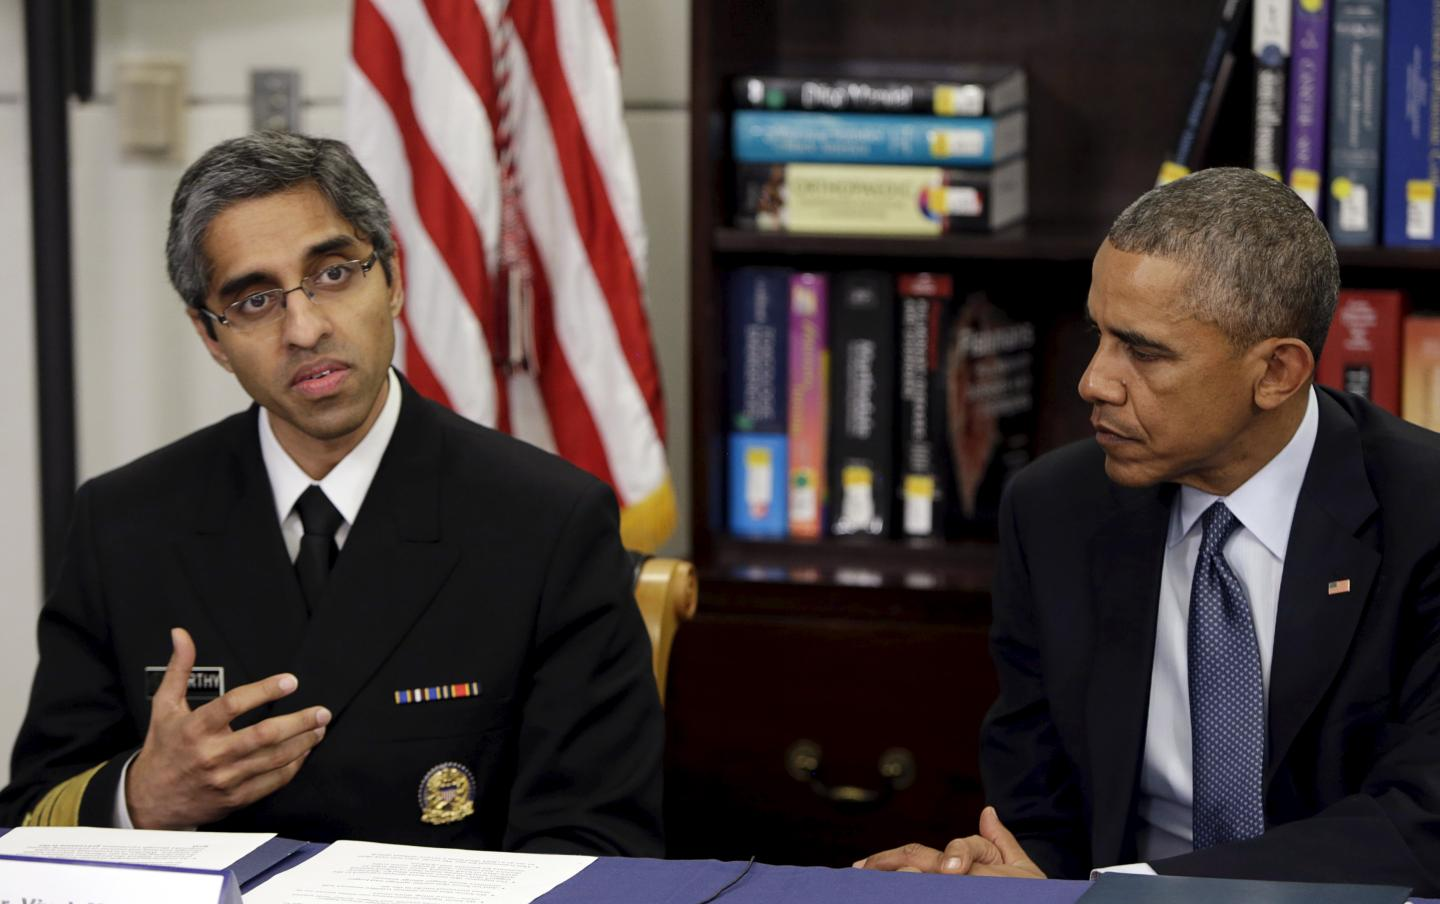 Then-President Barack Obama participates in a roundtable discussion with Dr. Vivek Murthy, the former U.S. surgeon general, on how climate change affects public health, at Howard University in Washington, D.C, on April 7, 2015. President Donald Trump on Friday requested Murthy's resignation.GARY CAMERON/REUTERS